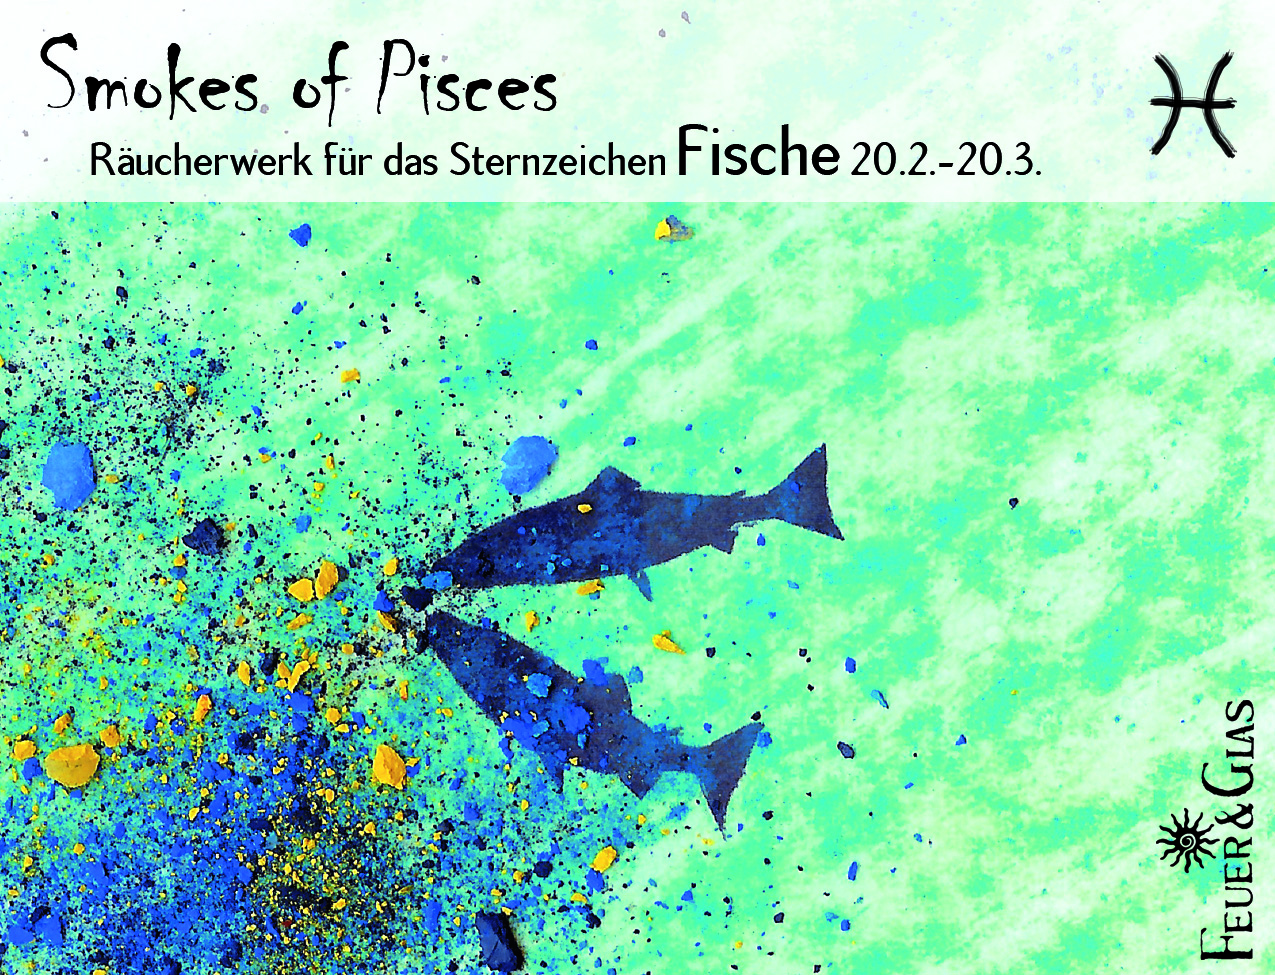 Smokes of Pisces - Fische